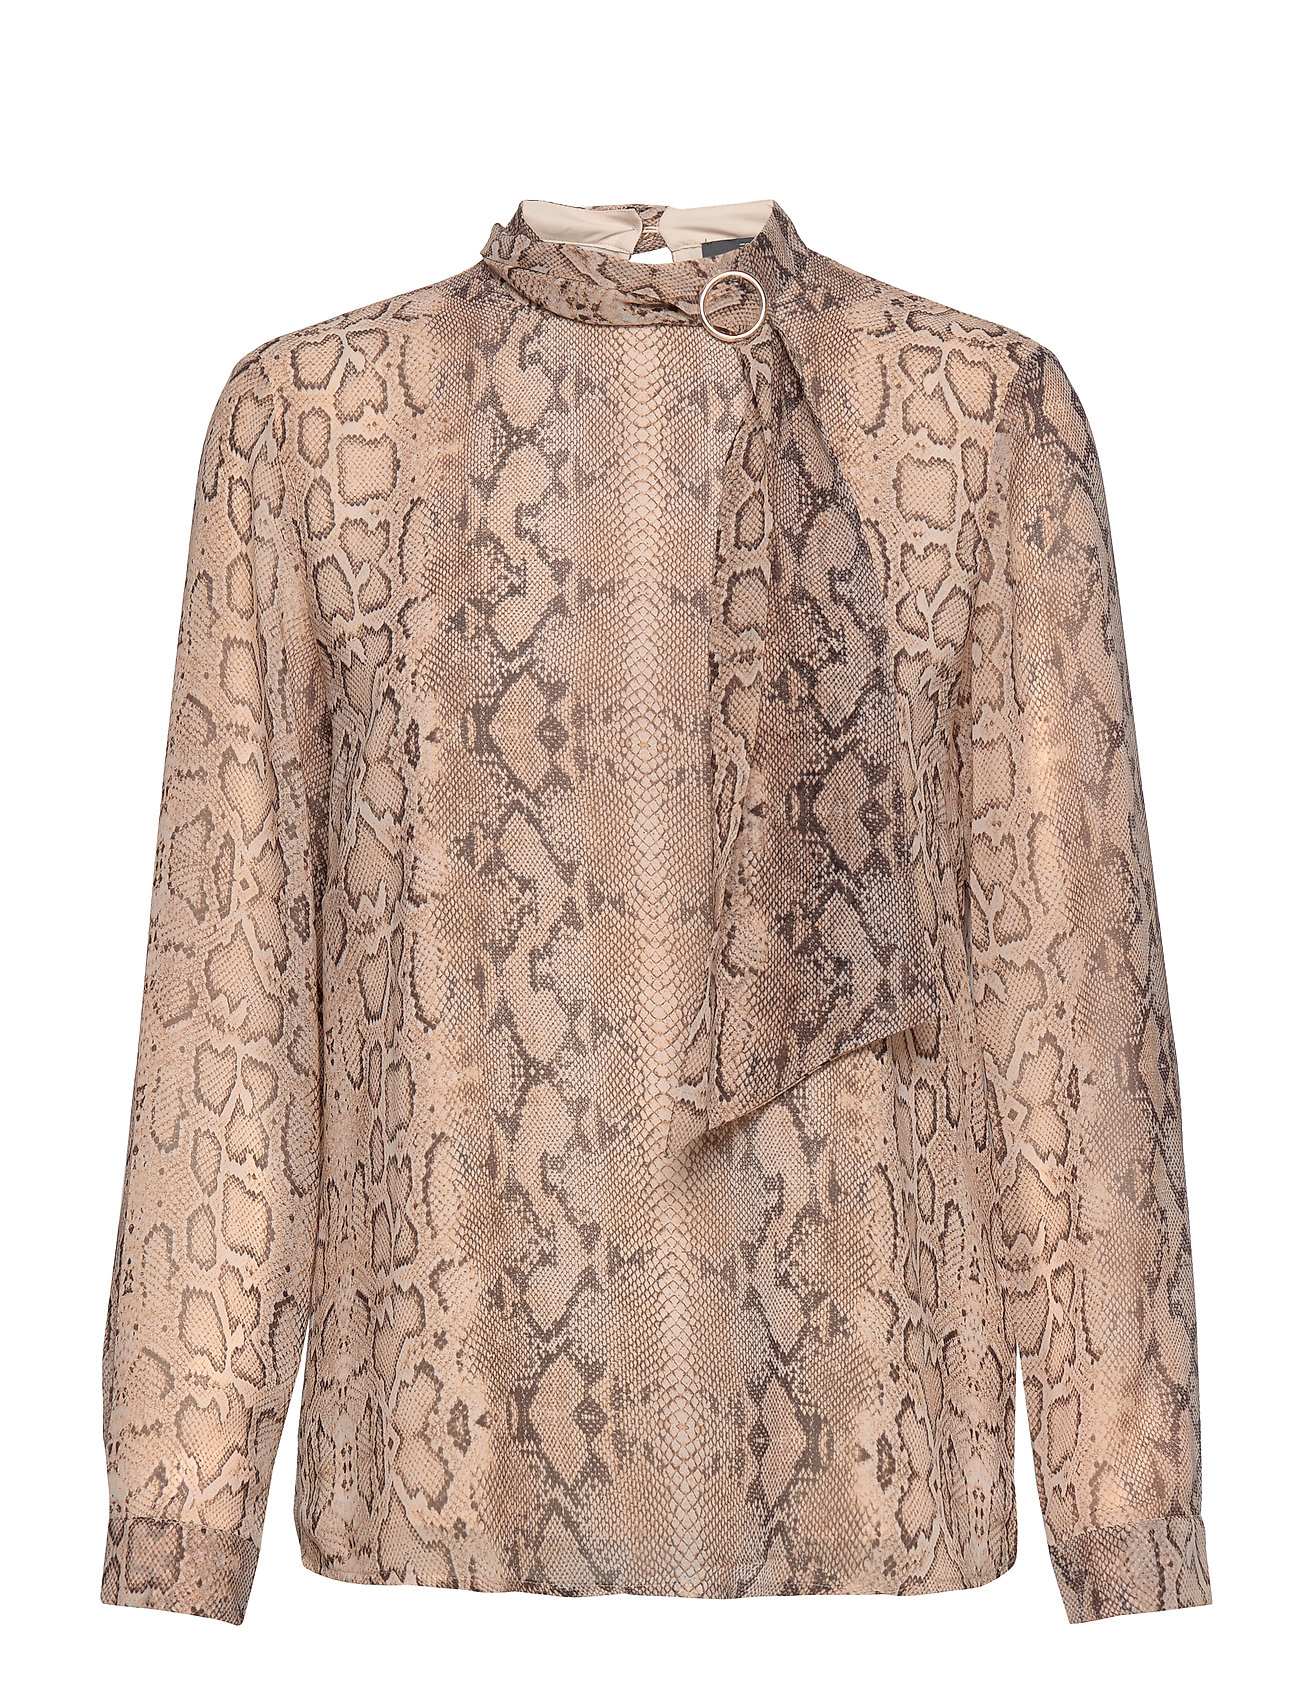 Esprit Collection Blouses woven - LIGHT TAUPE 4